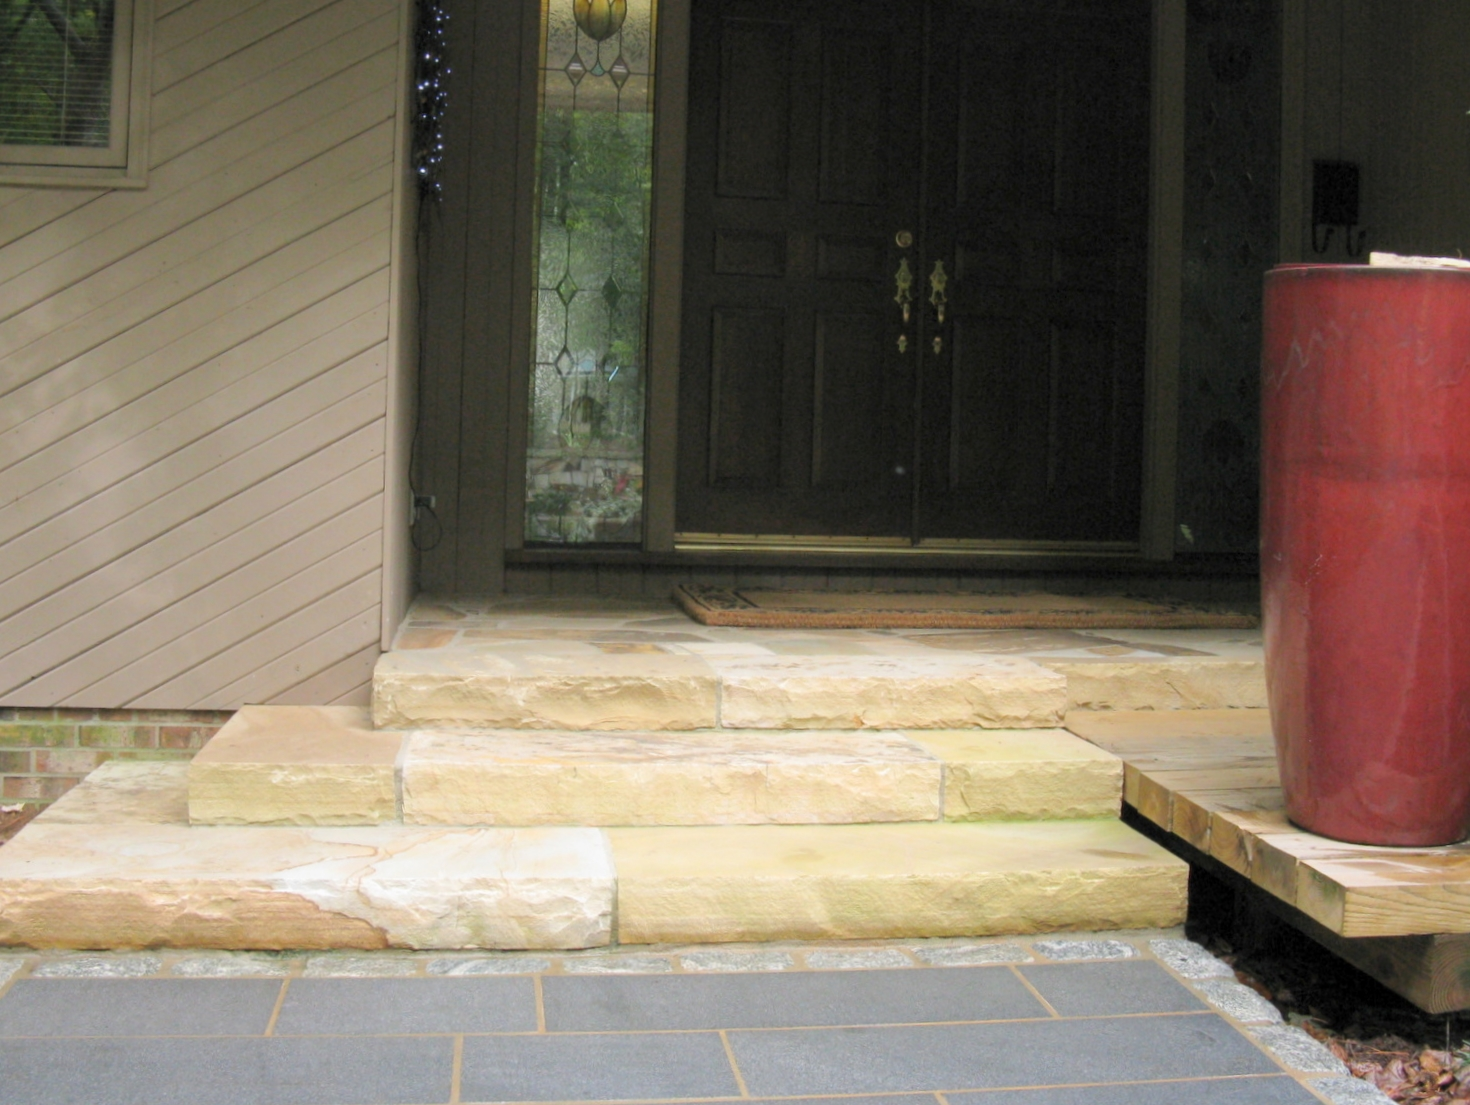 A detailed look at the sandstone steps